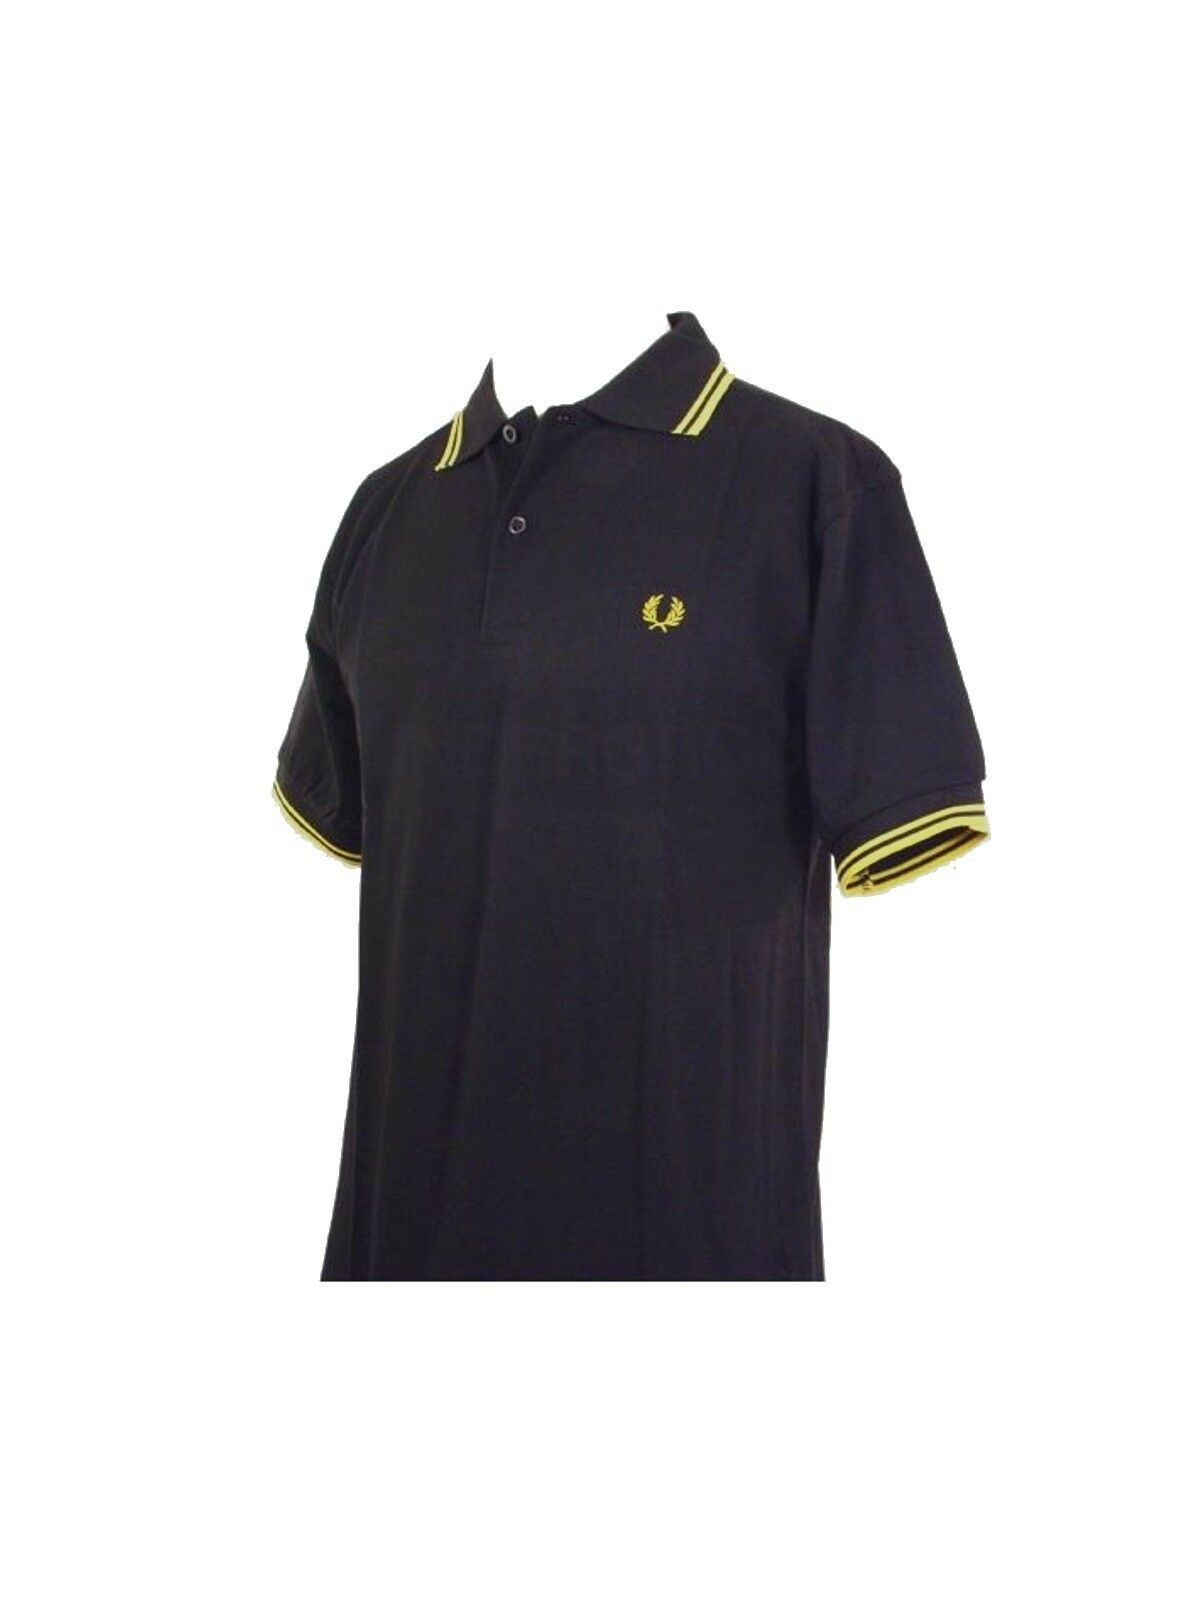 FROT Perry Polo Shirt M1200 506 Schwarz / Gelb  5411